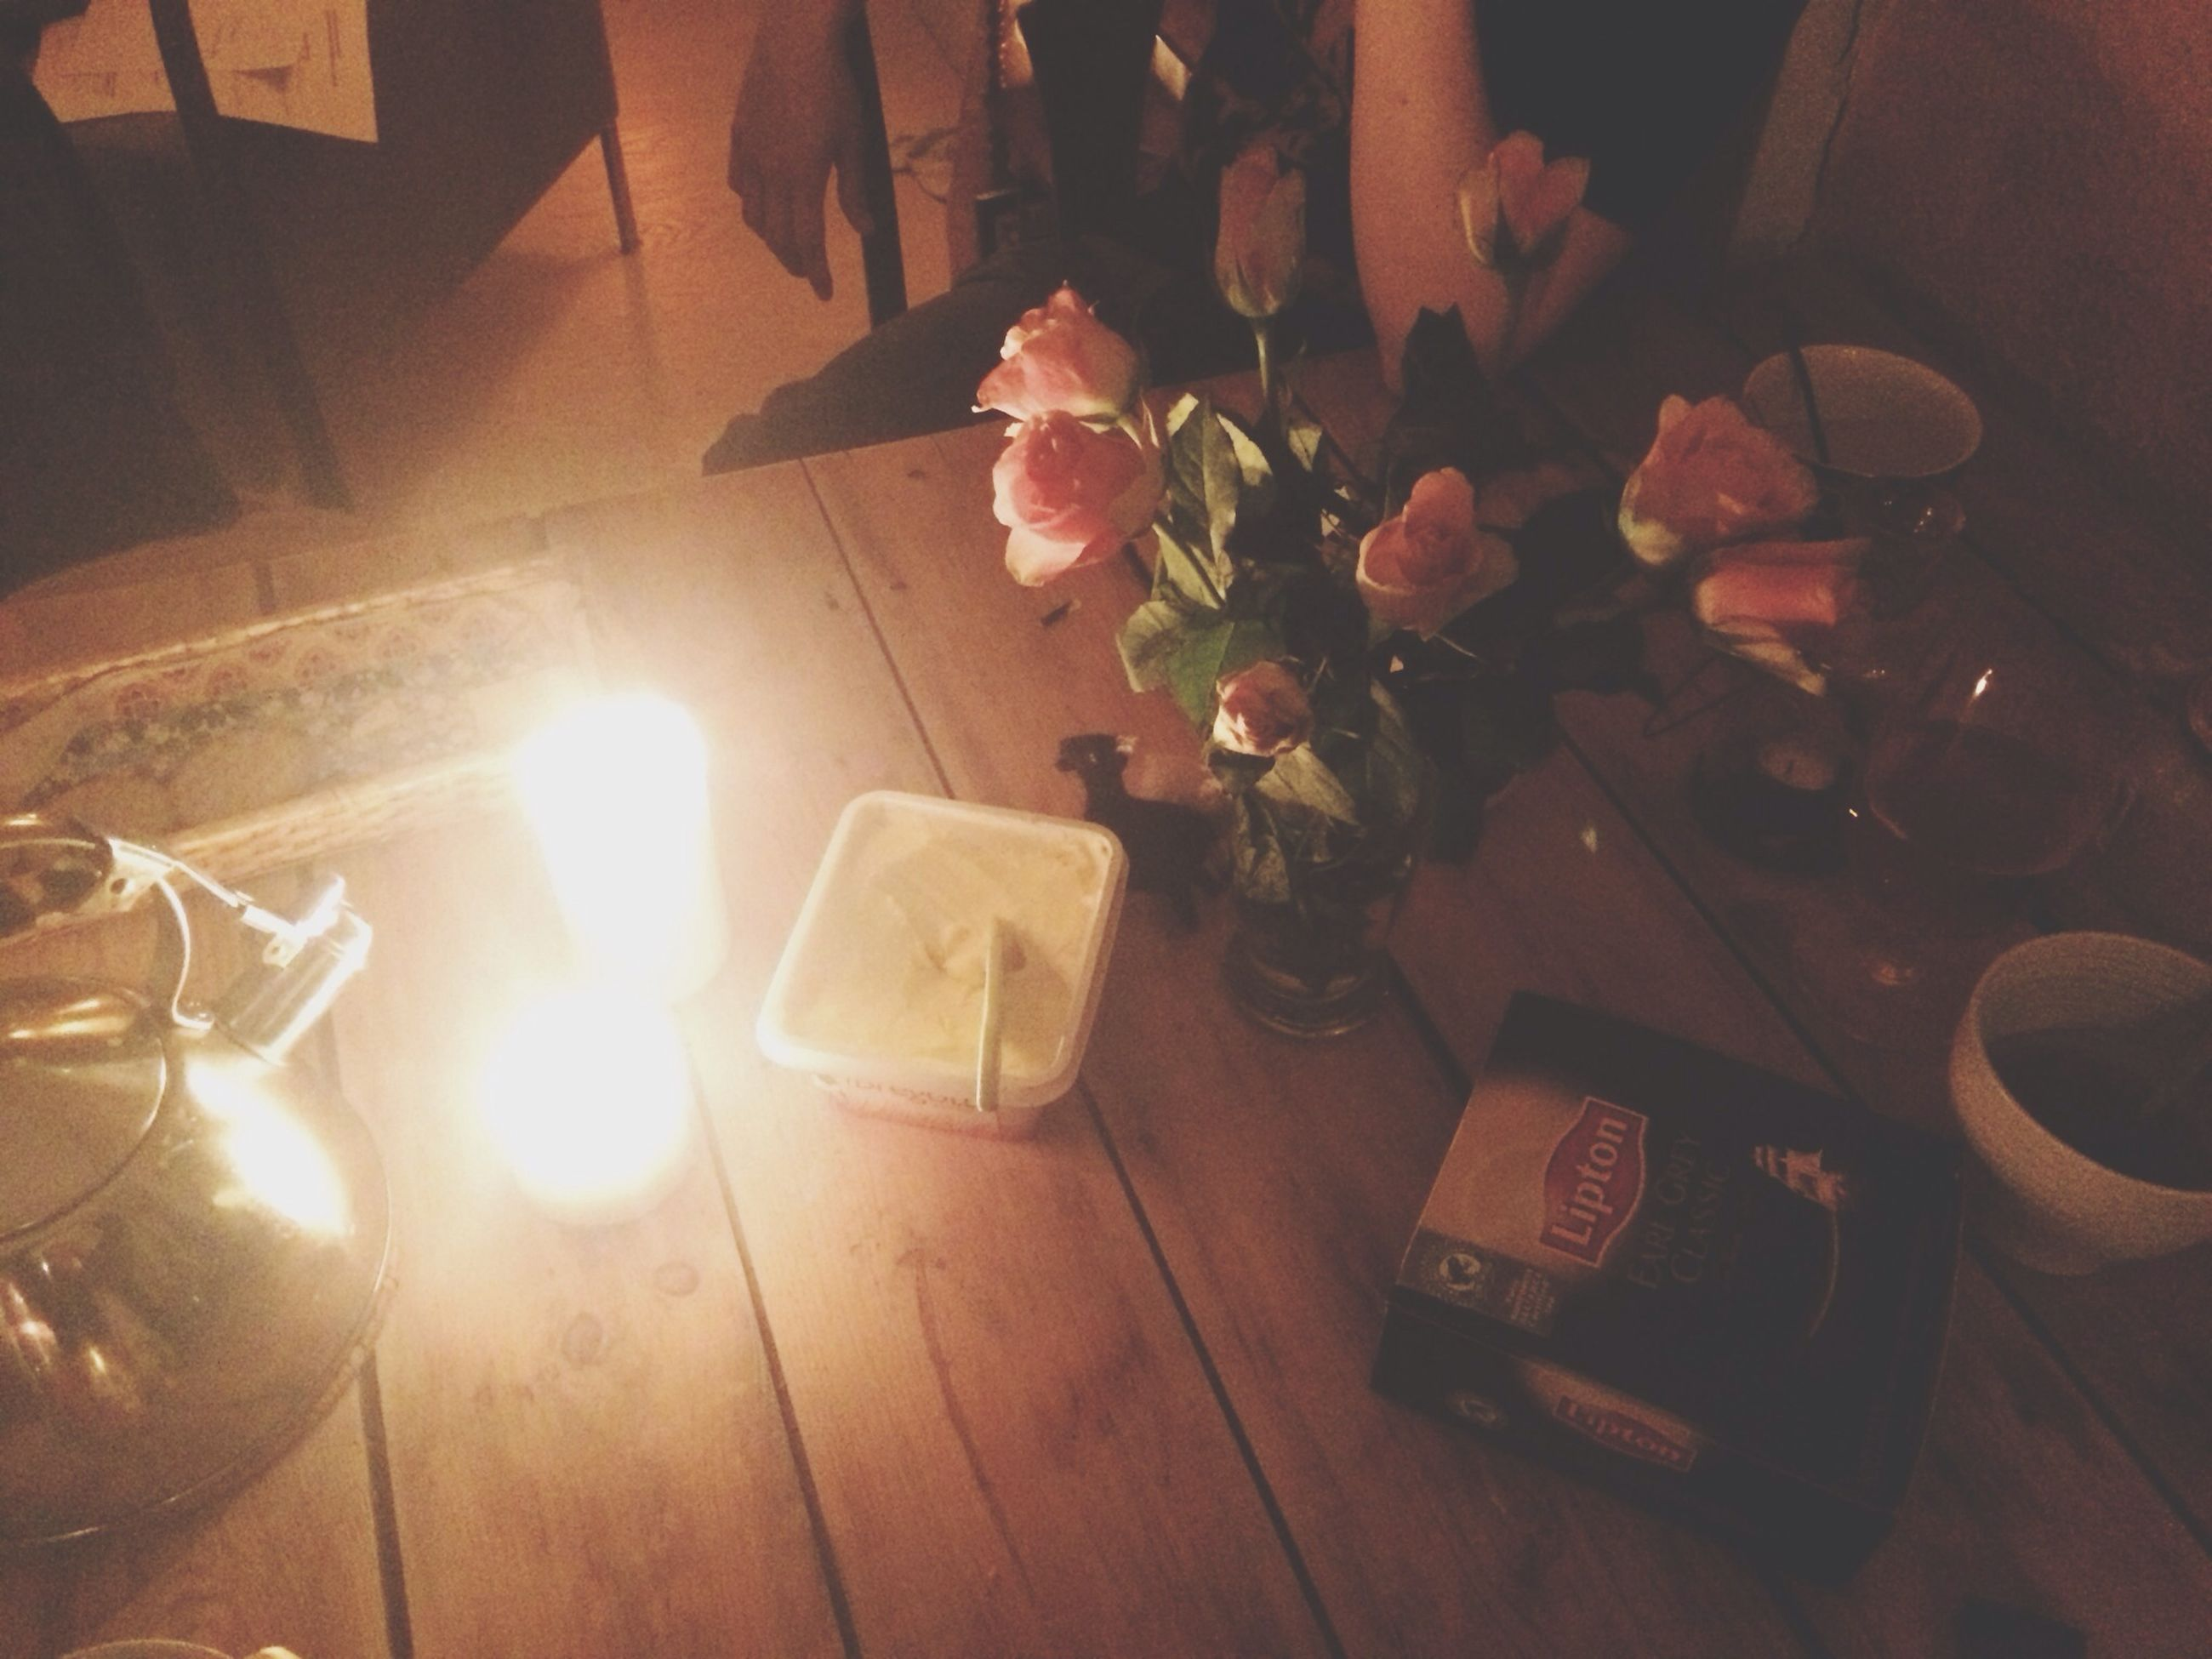 indoors, table, flower, vase, candle, home interior, illuminated, high angle view, decoration, still life, close-up, wood - material, no people, burning, freshness, lighting equipment, light - natural phenomenon, glowing, glass - material, flame